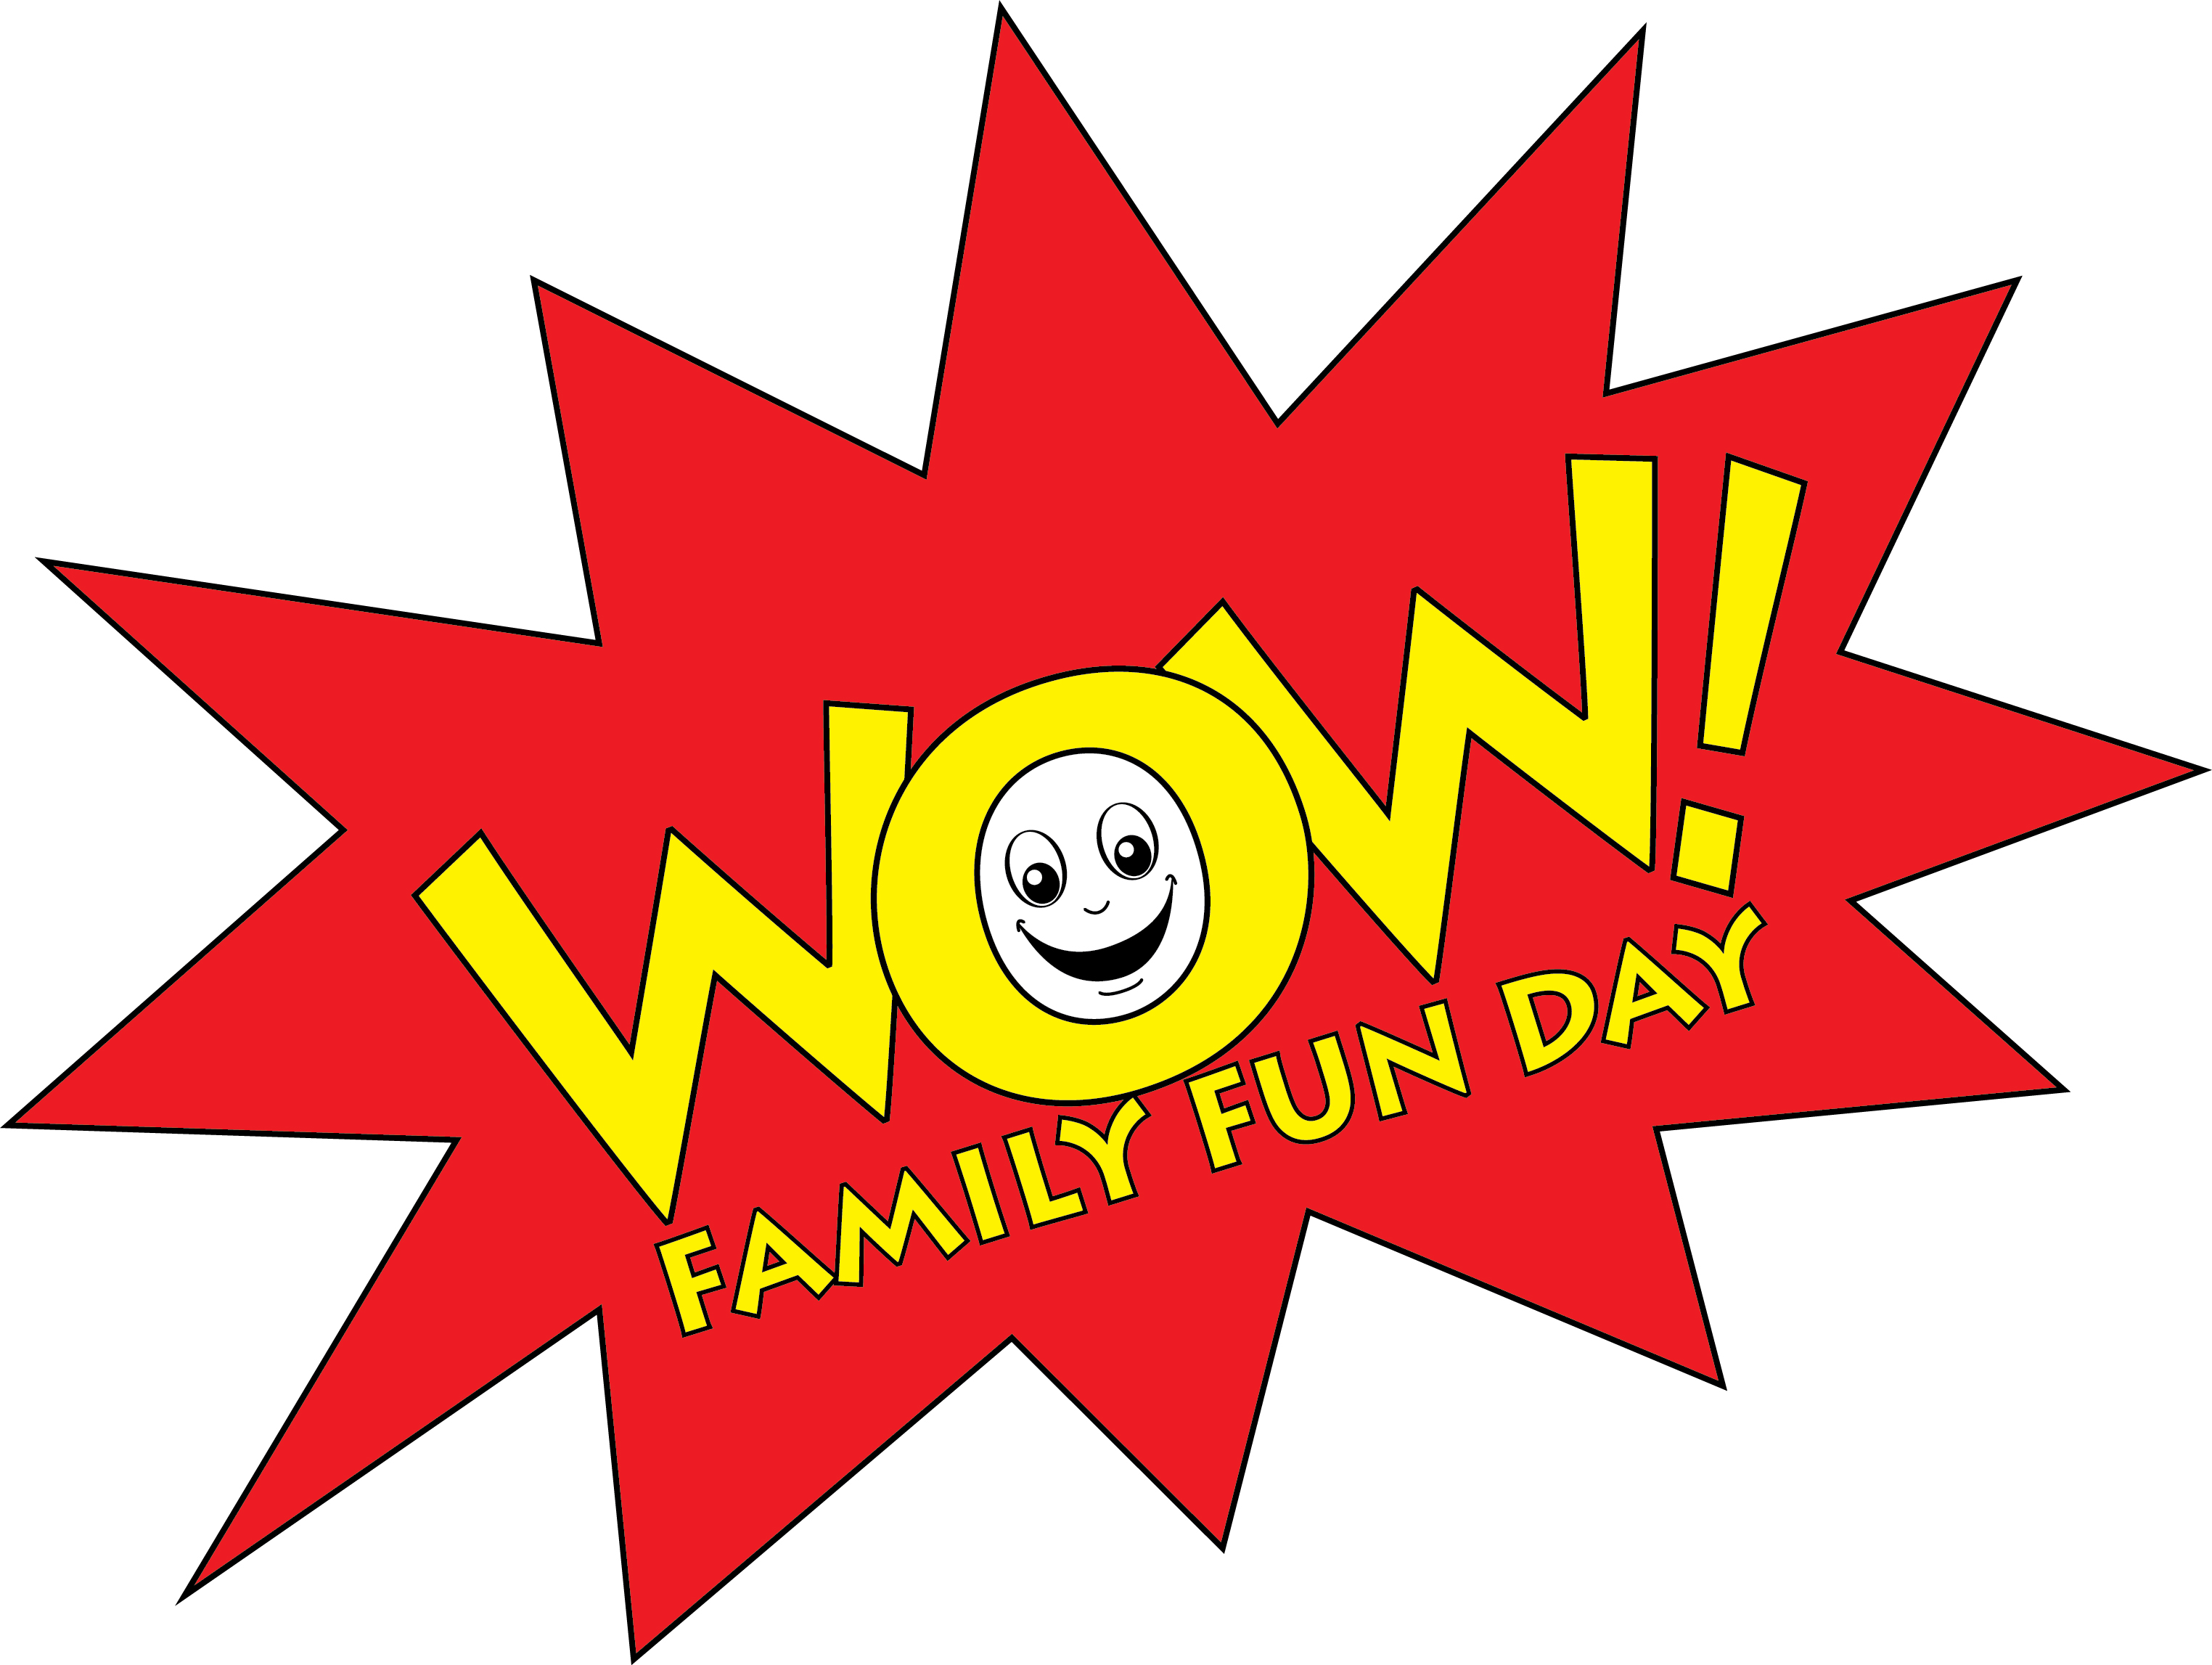 Thank You To Everyone That Attended And Helped At Wow  Family Fun Day